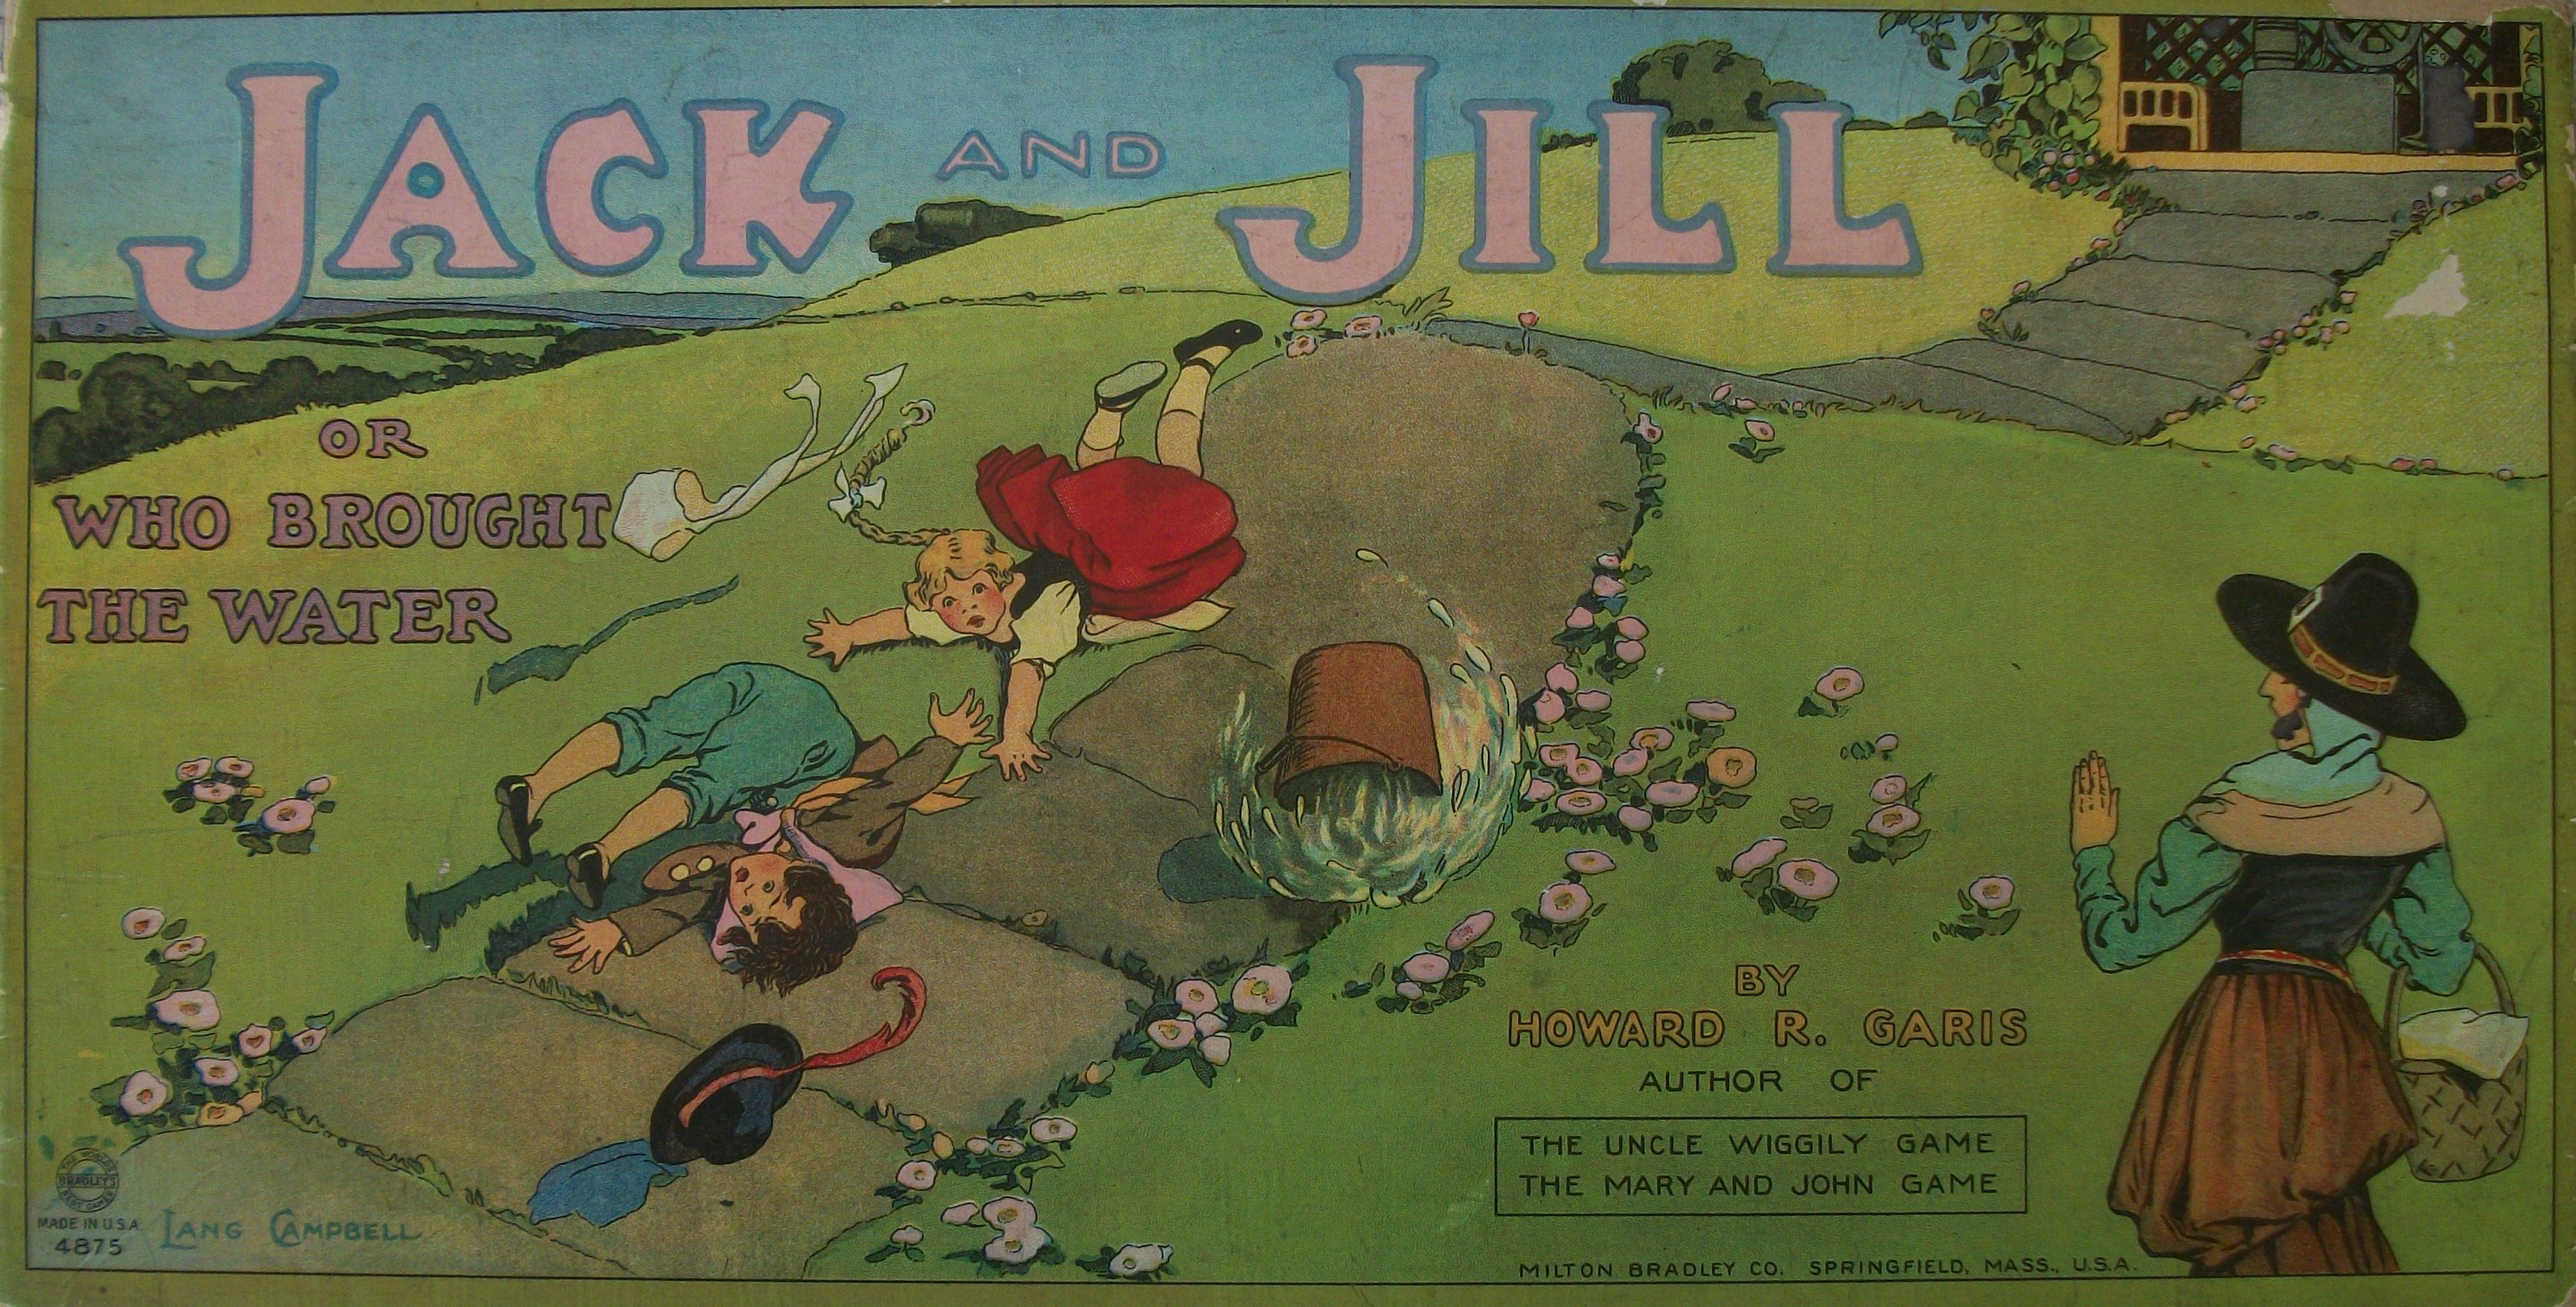 The 1938 Vintage Board Game Of Jack And Jill All About Fun And Games